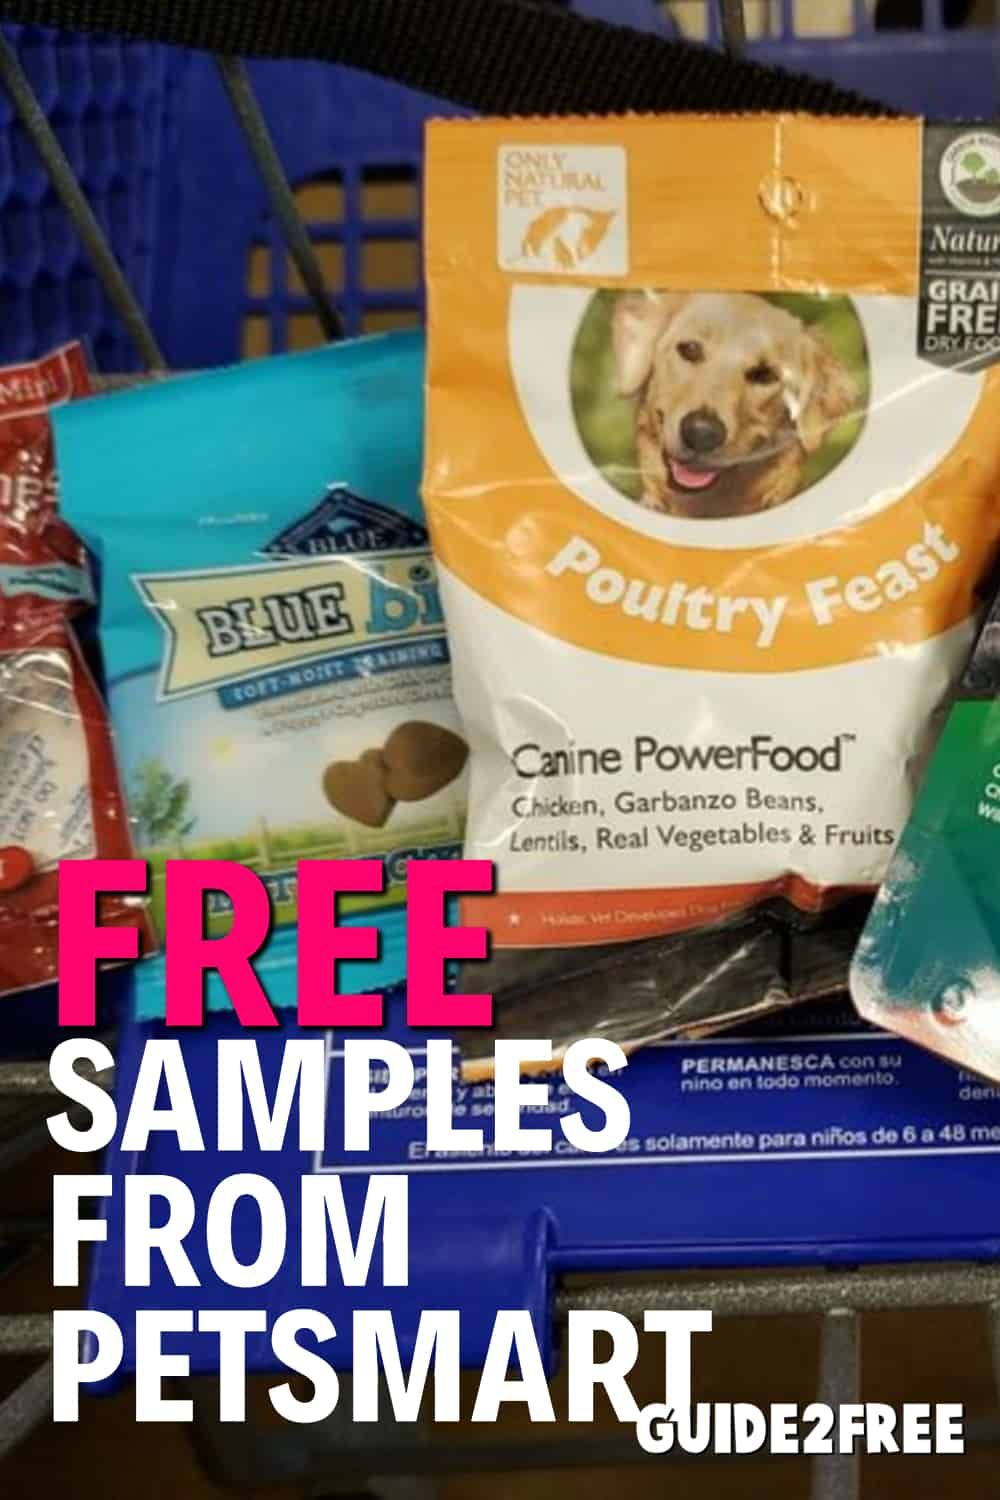 Free Samples At Petsmart On Sample Saturday Coupons For Free